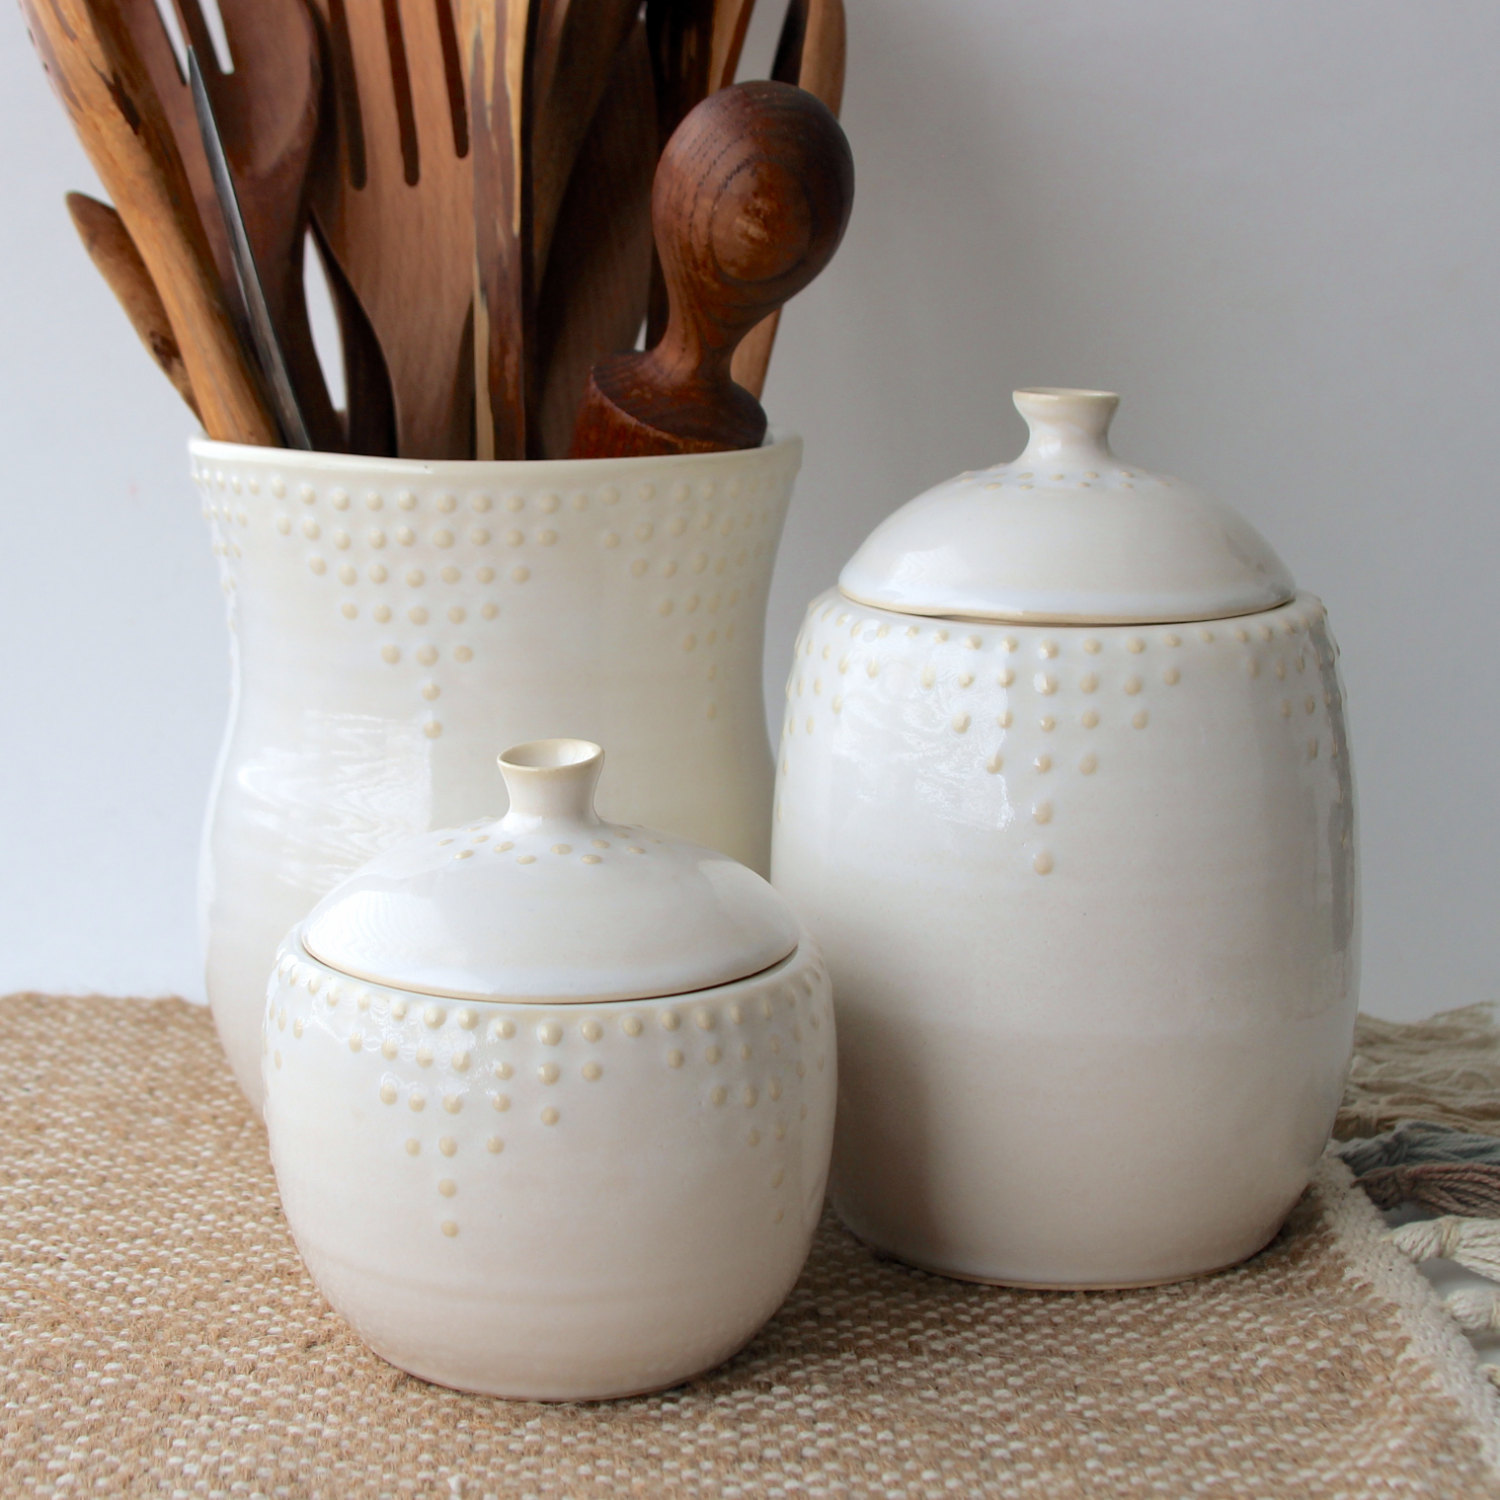 Lidded Jars in Creamy White